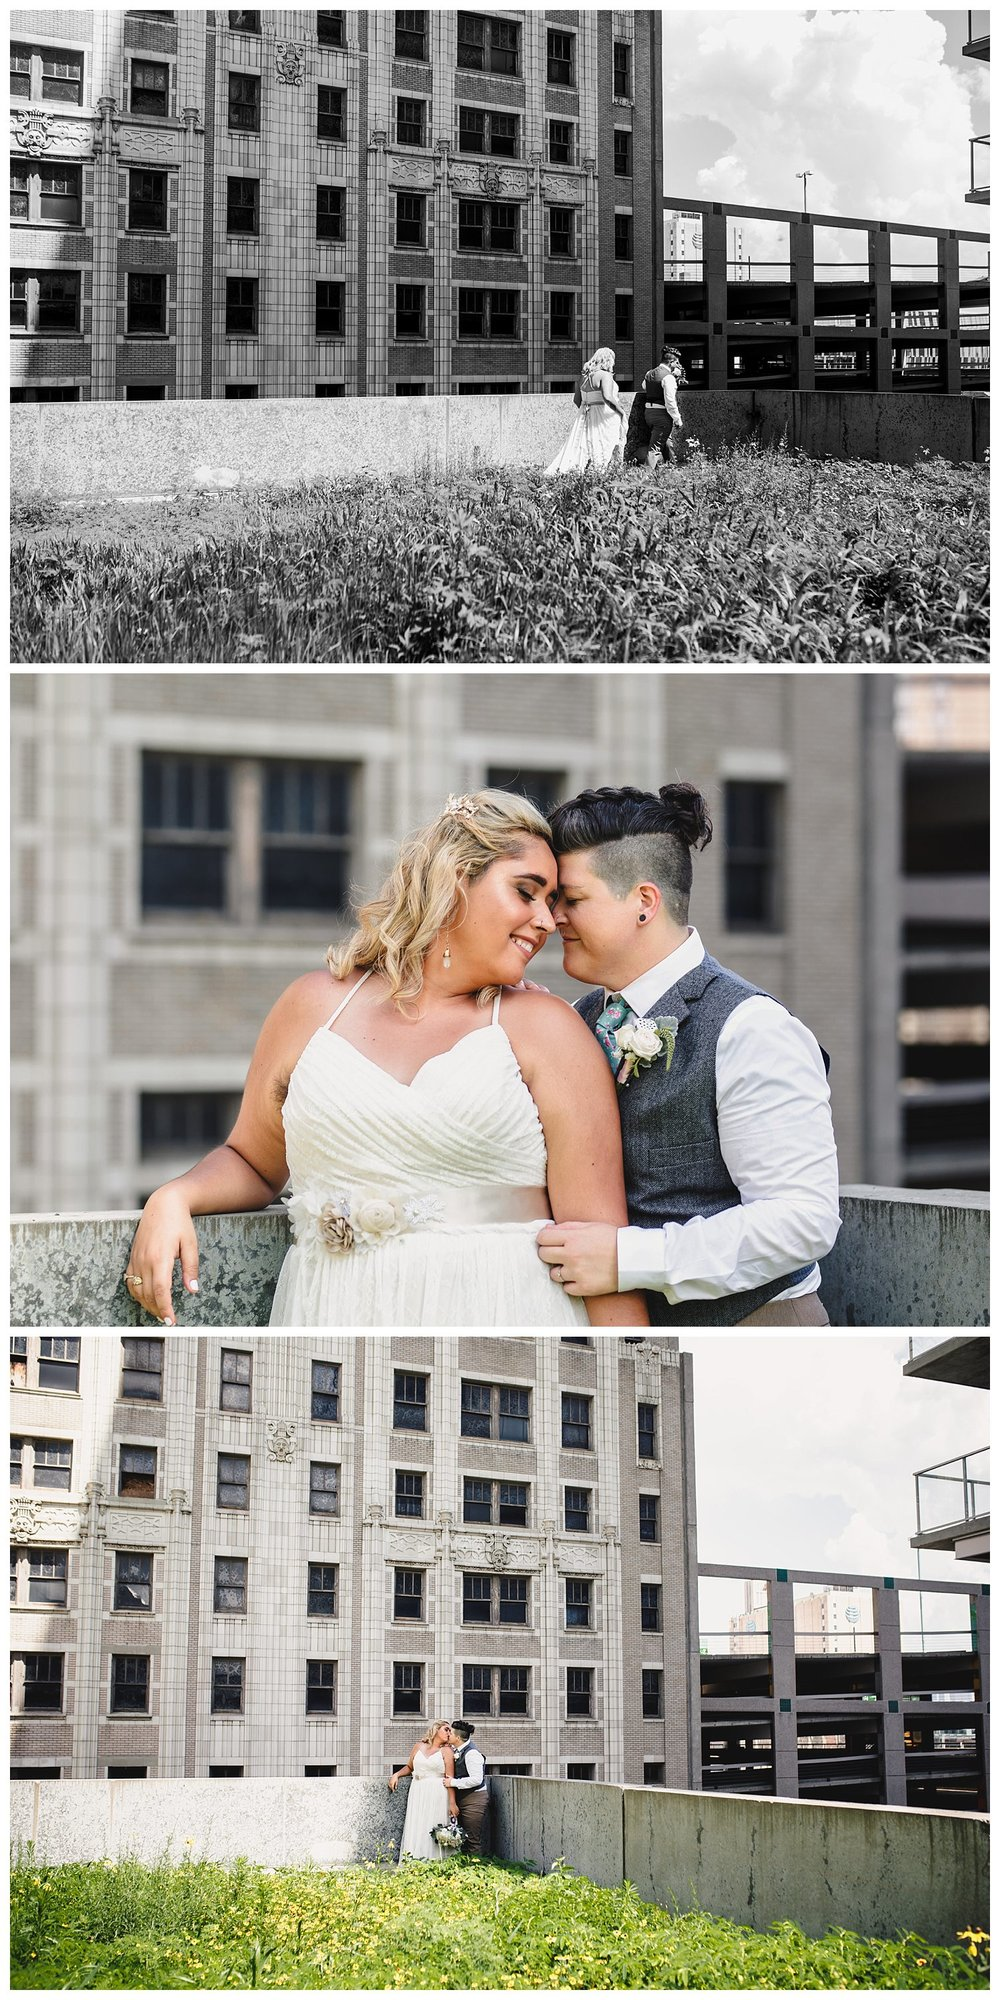 Kelsey_Diane_Photography_The_Vow_Exchange_Kansas_City_LGBT_Friendly_Wedding_Photographer_Kansas_City_Scout_Ica_0716.jpg